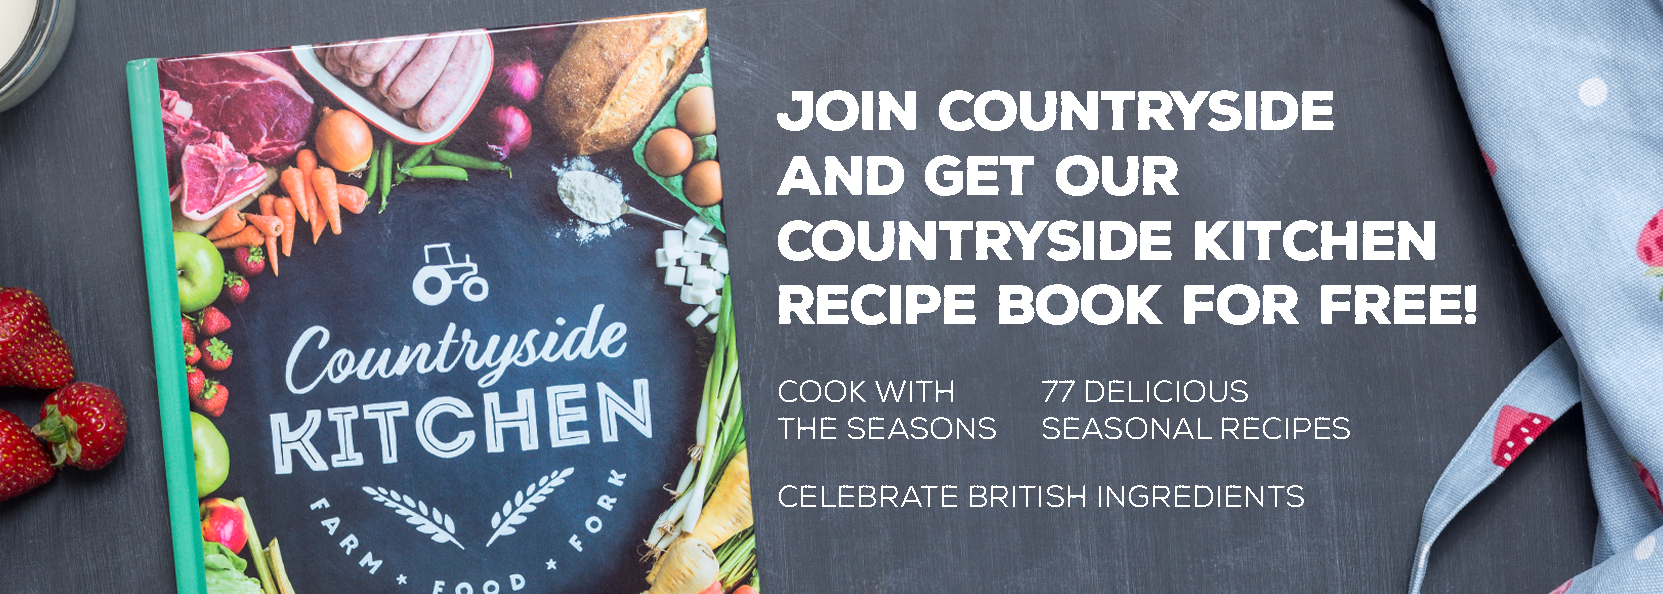 Countryside Kitchen recipe book web banner